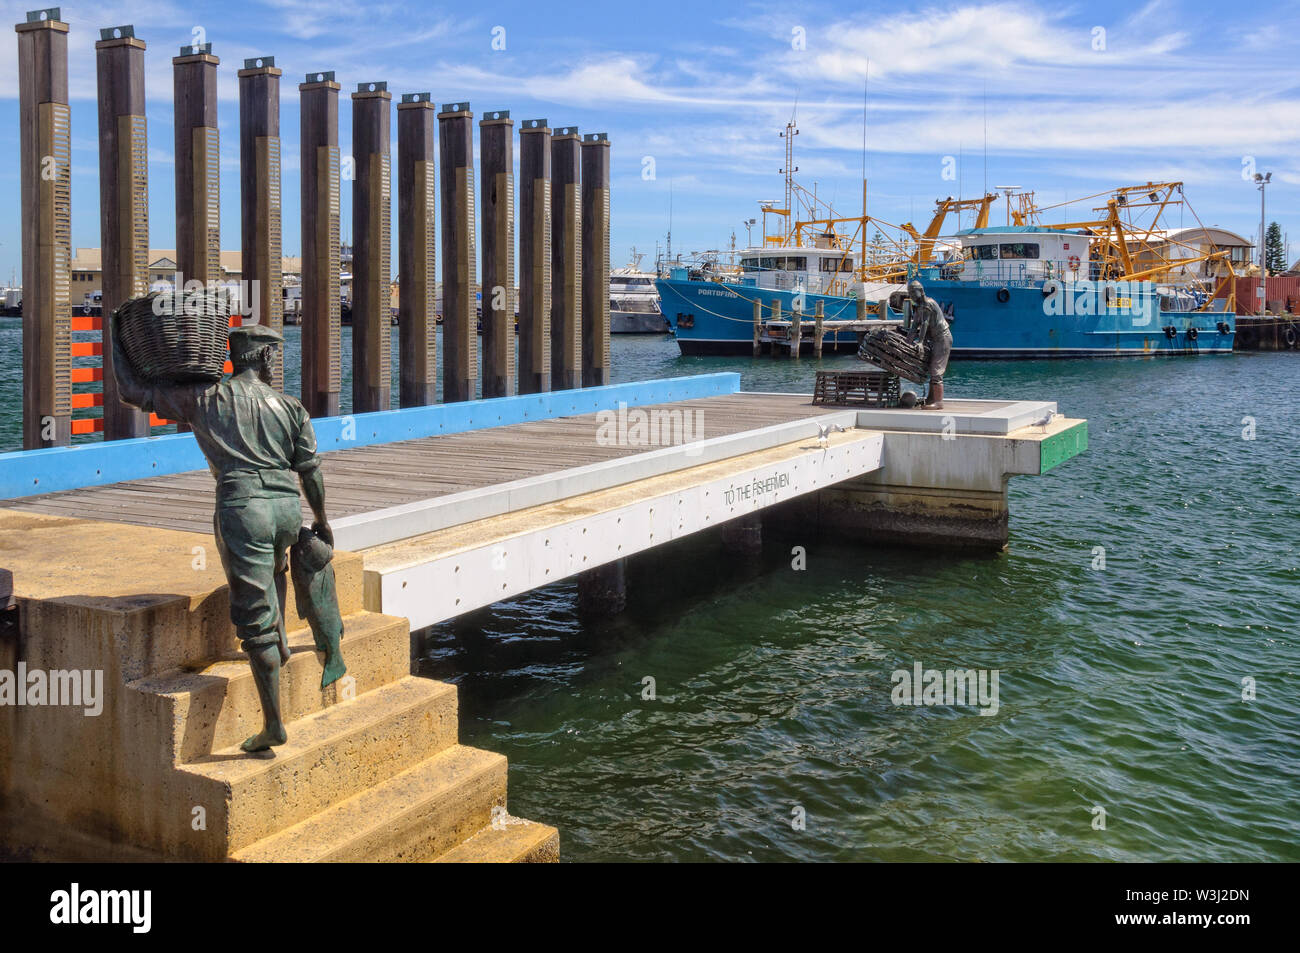 'The Jetty - To the Fishermen' by Greg James (2005) commemorates the local fisherman who started the fishing industry - Fremantle, WA, Australia - Stock Image